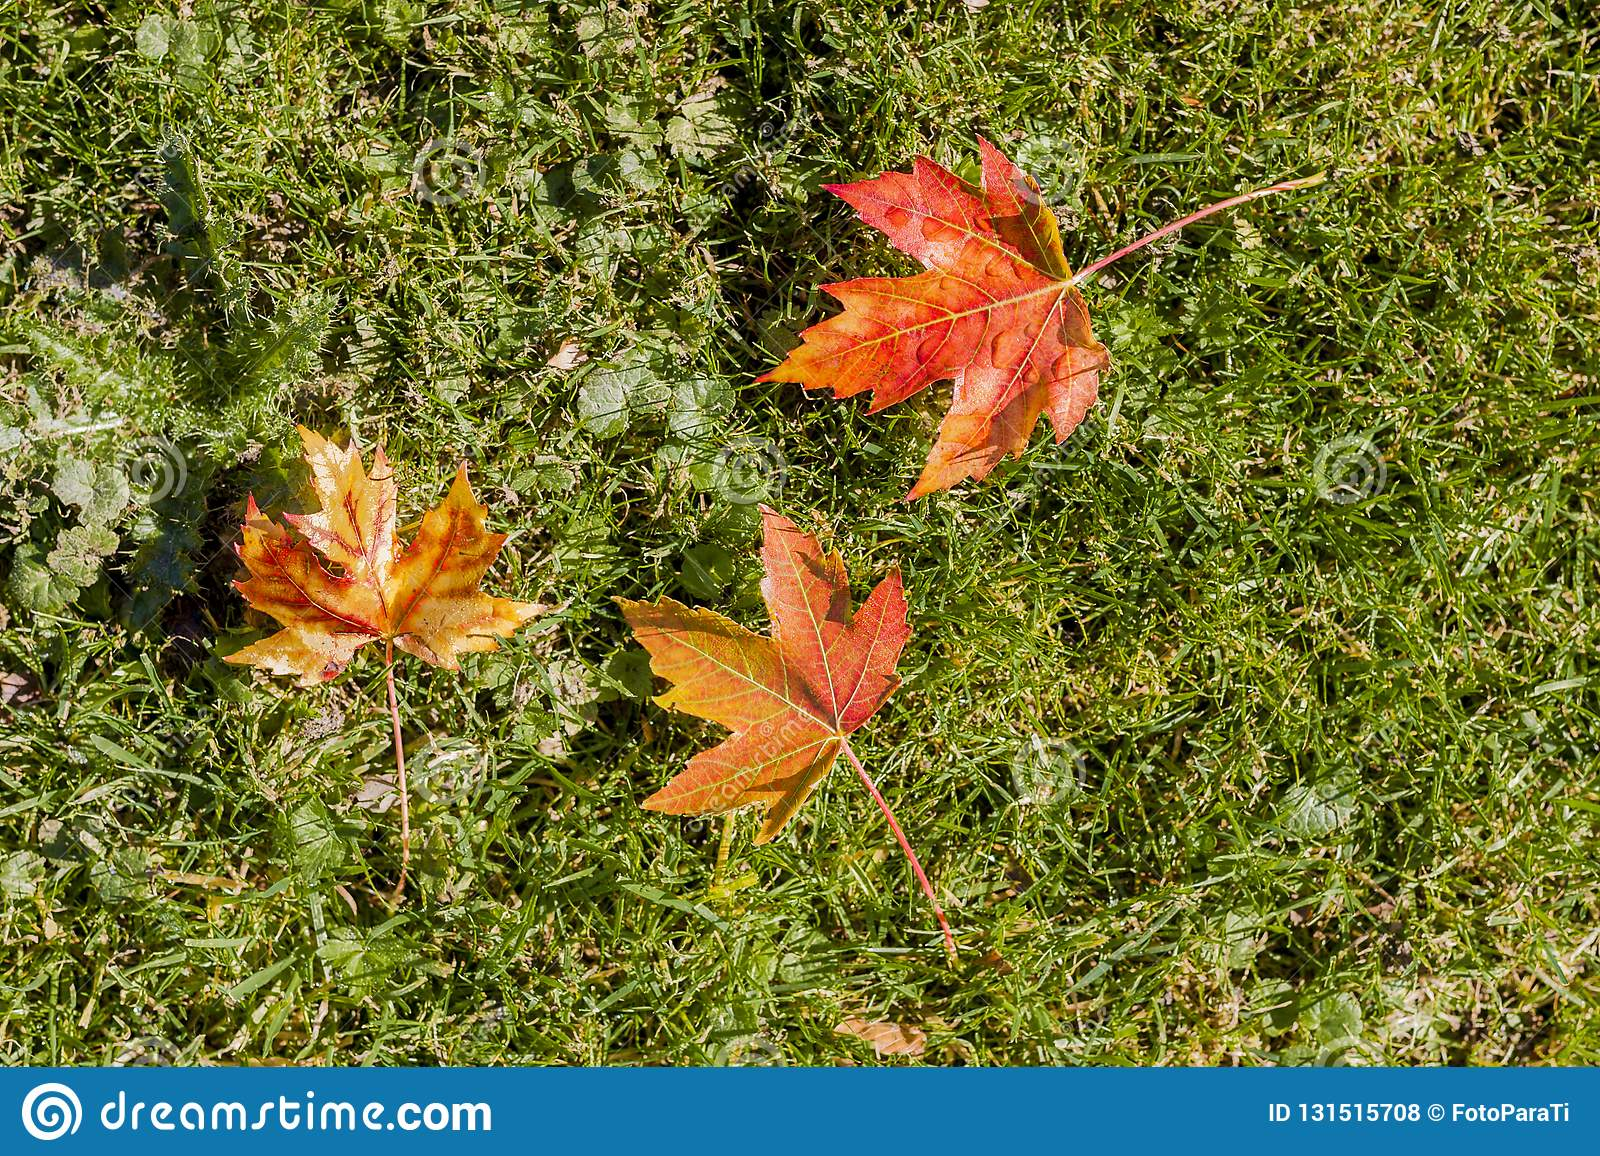 Amazing image of autumn leaves of red, yellow and brown colors on the grass